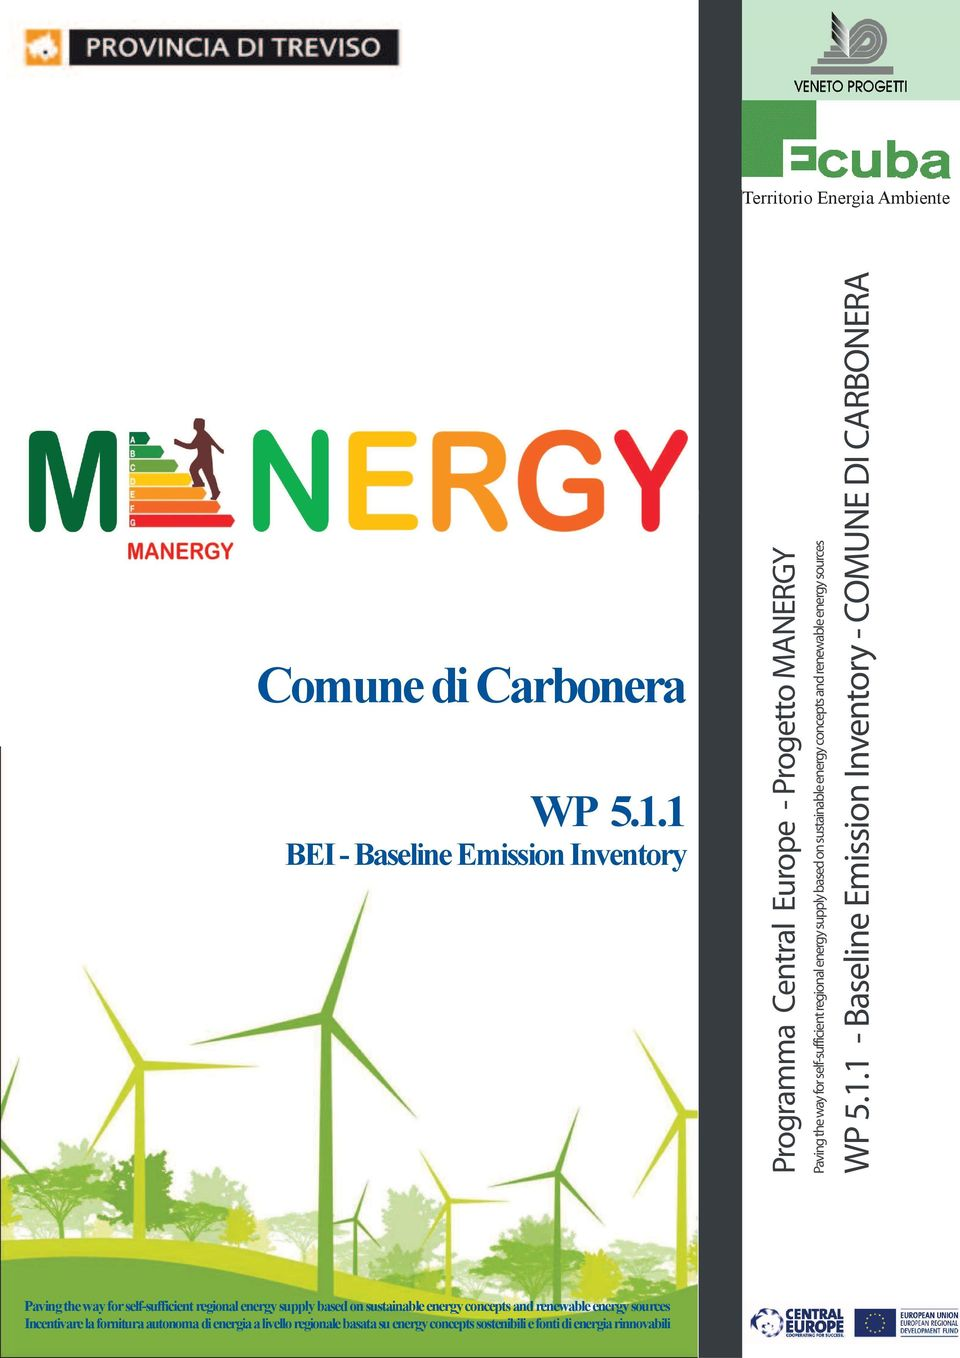 energy sources WP 5.1.